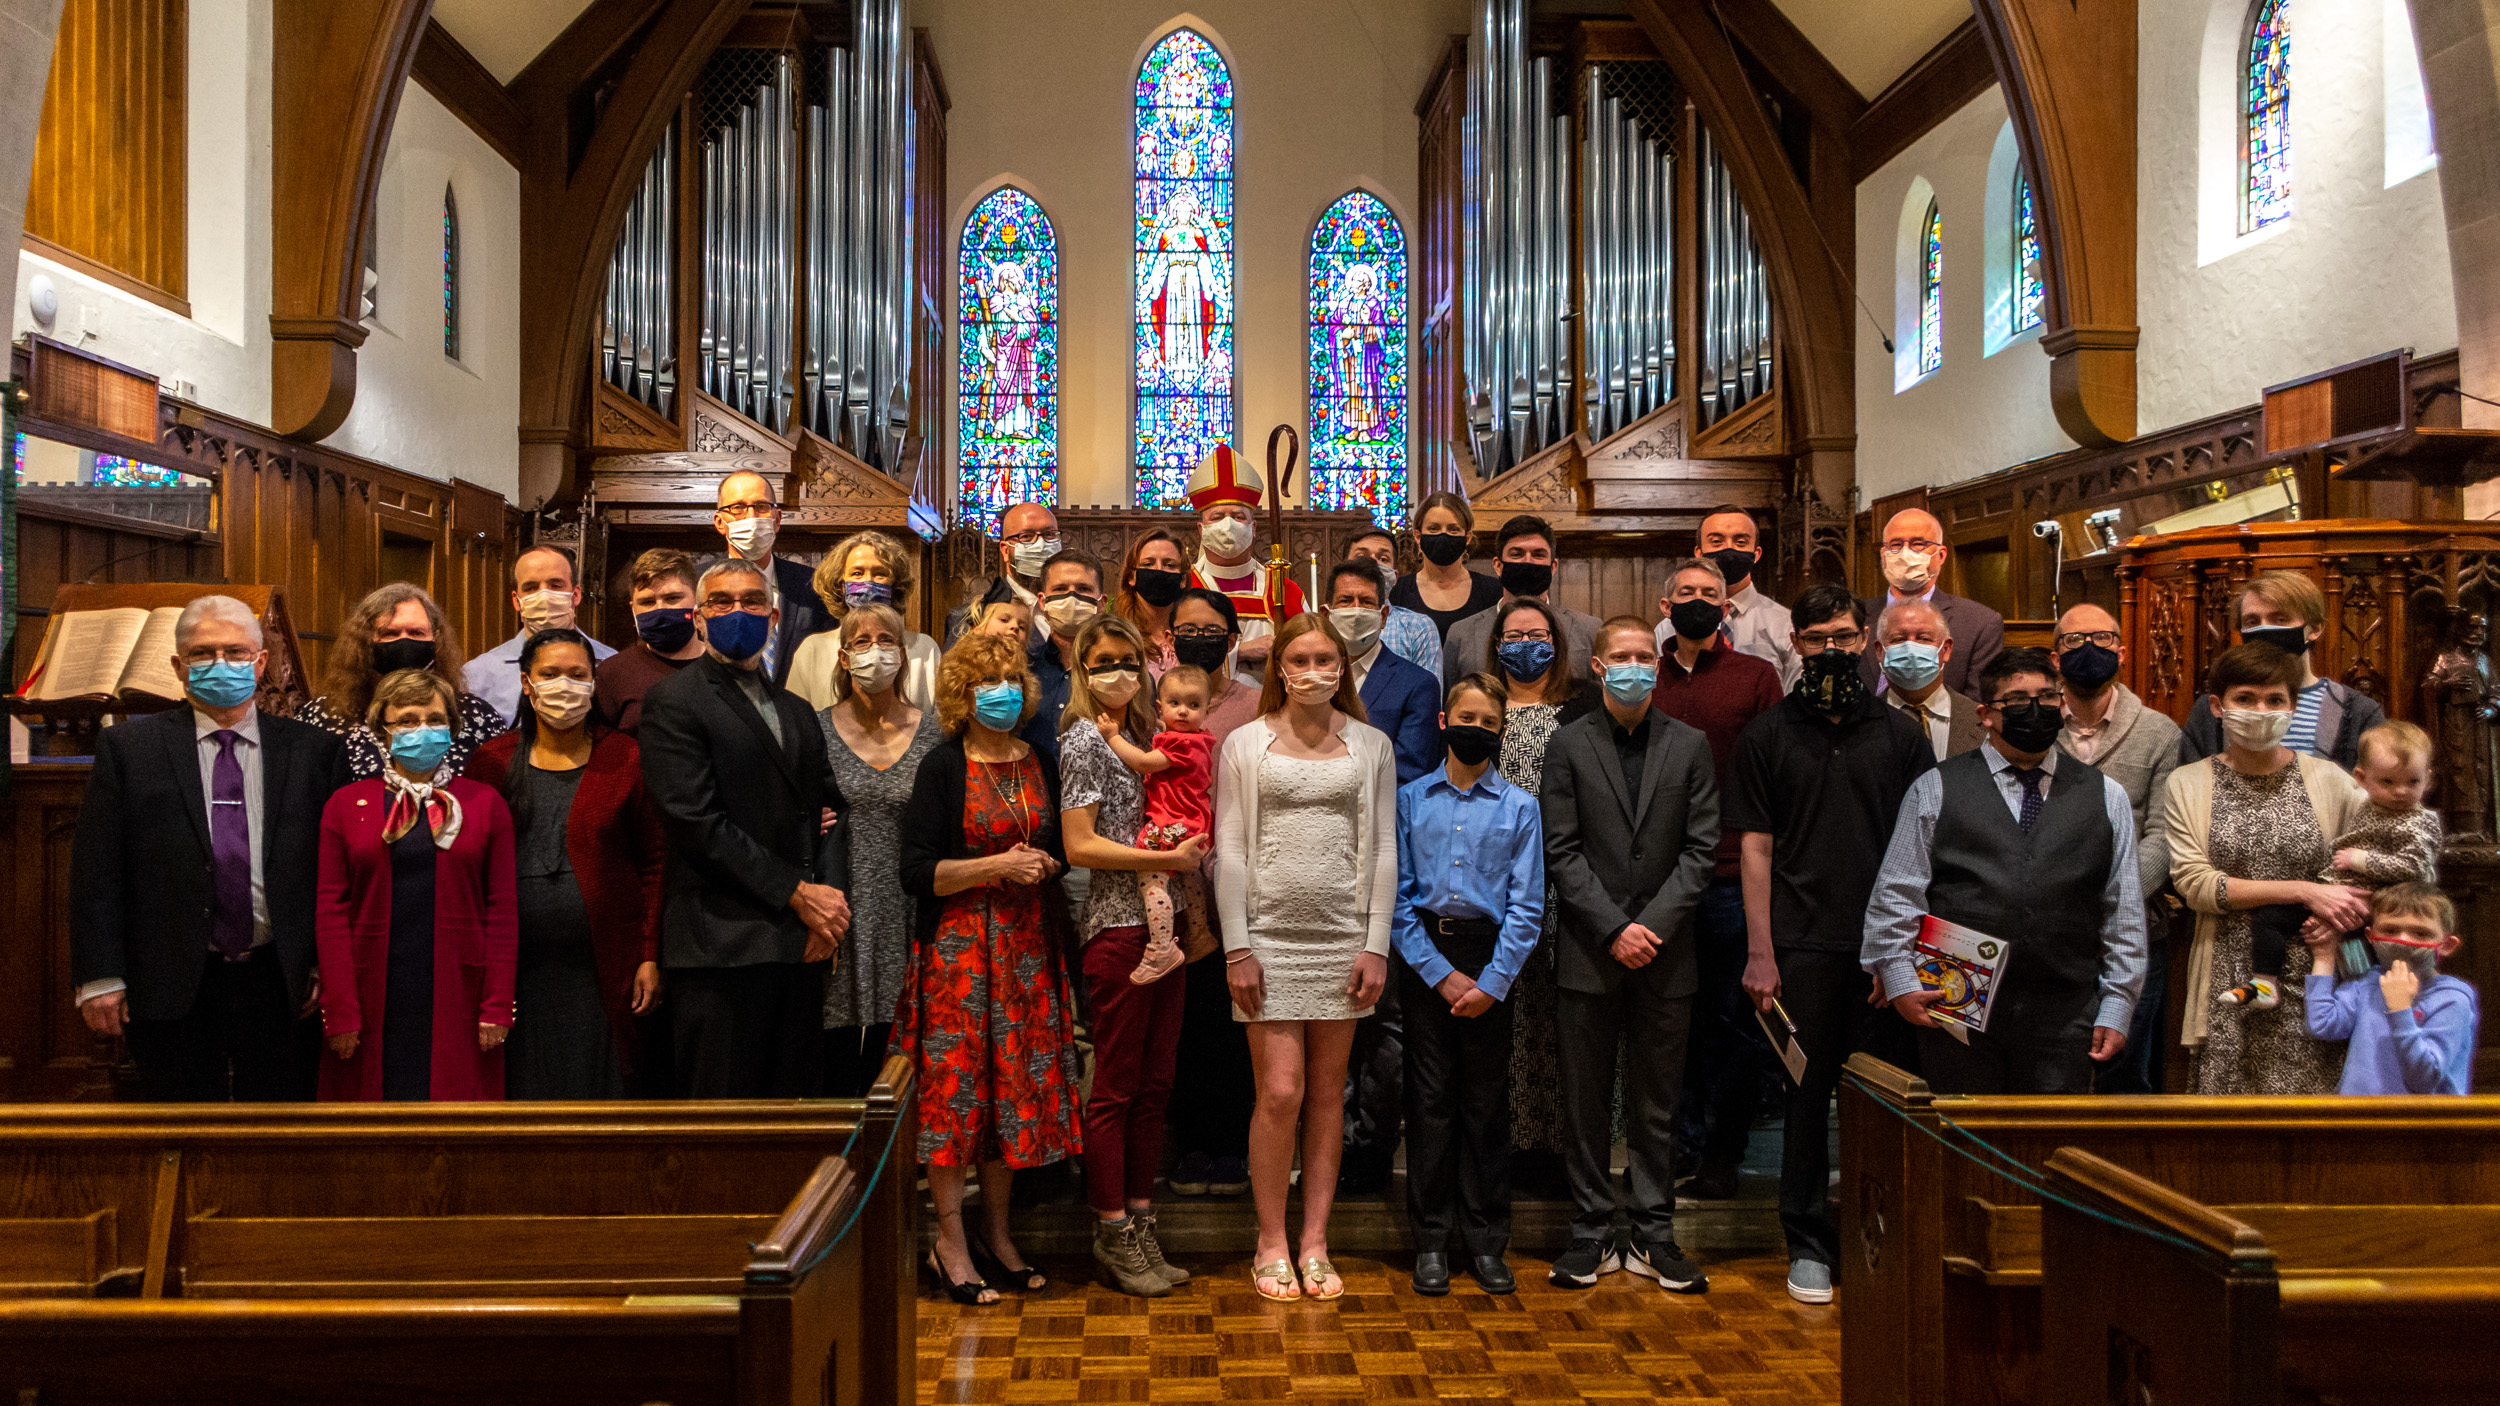 Area Confirmation Service at St. Andrew's